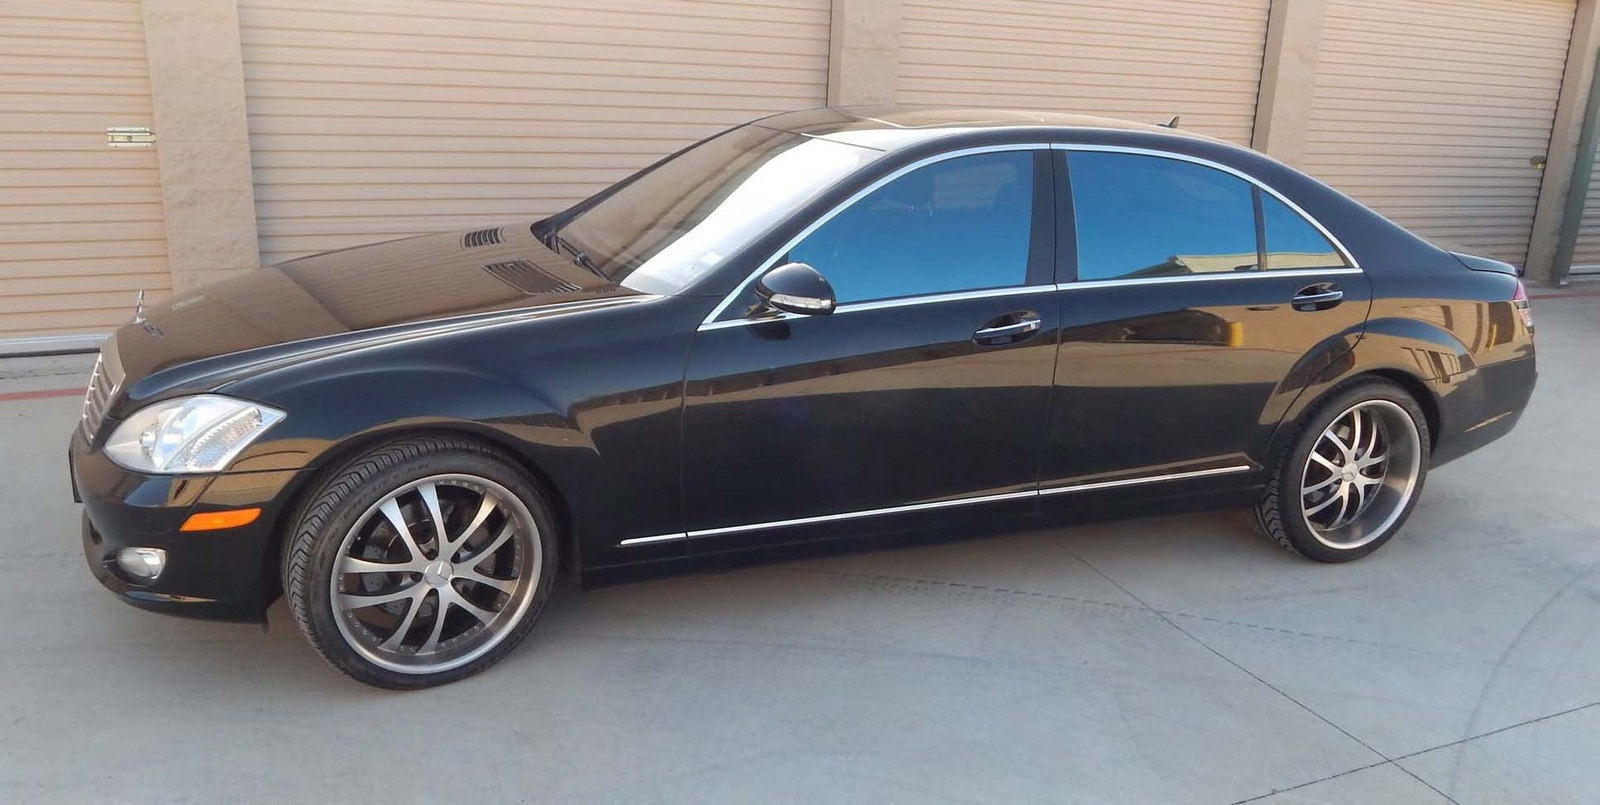 2008 mercedes benz s class s550 for sale cargurus for Mercedes benz for sale cargurus